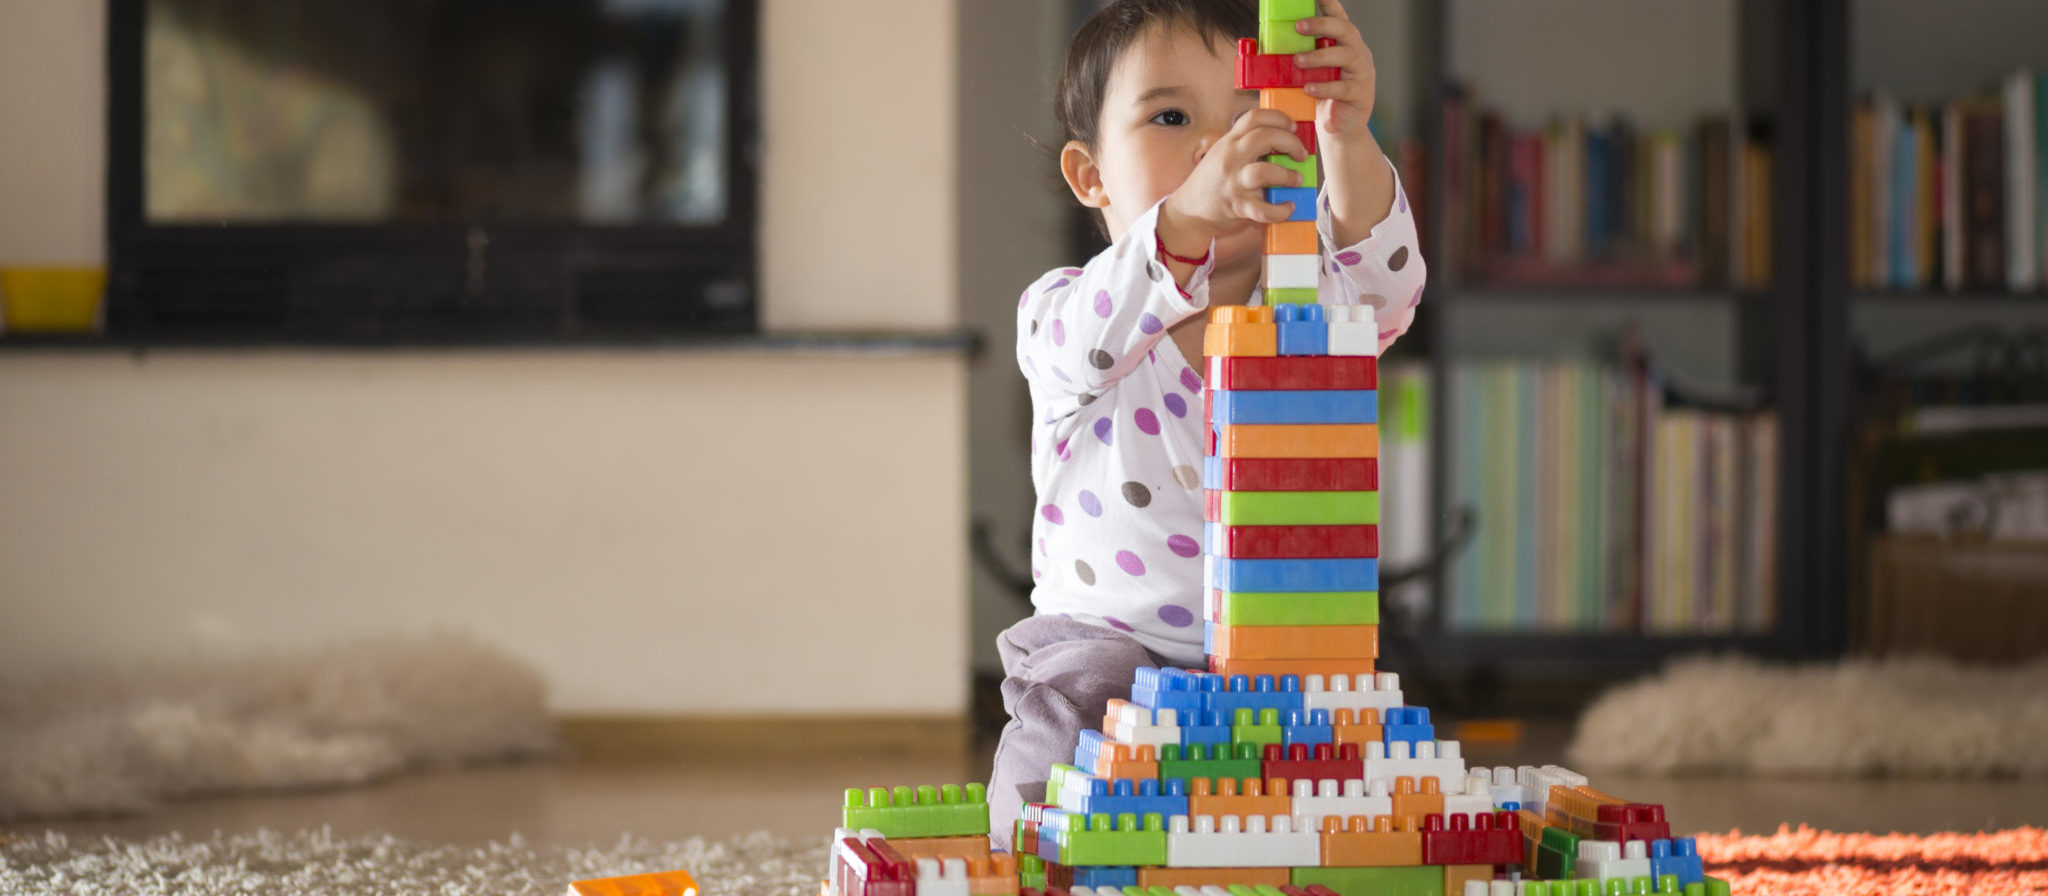 Building blocks stimulate the imagination and are incredibly easy to clean up.